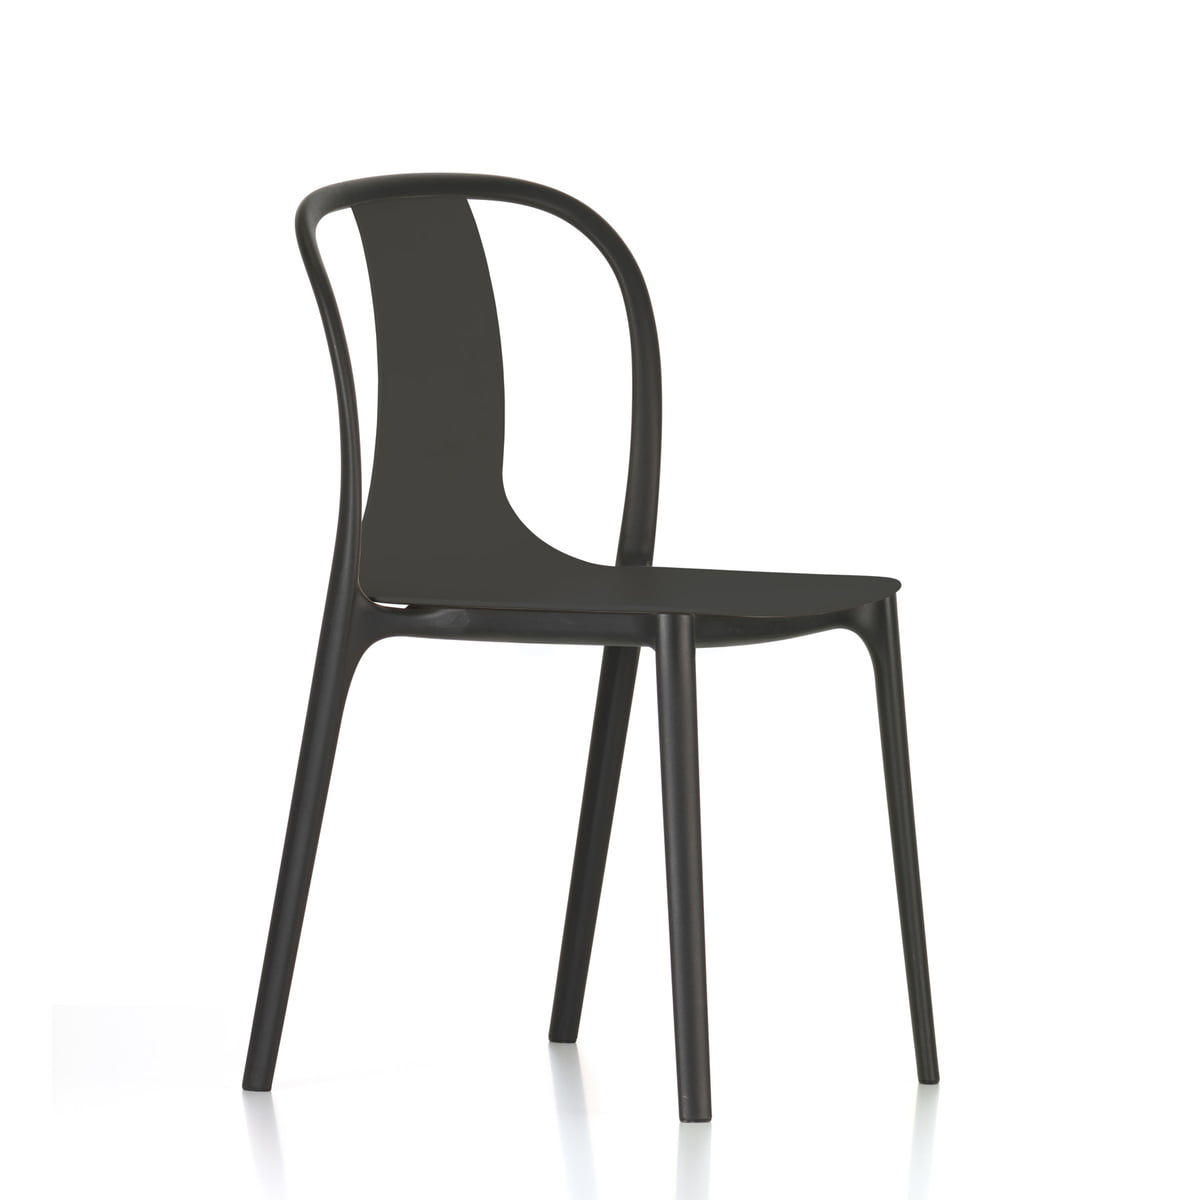 Belleville Chair Plastic by Vitra in the shop